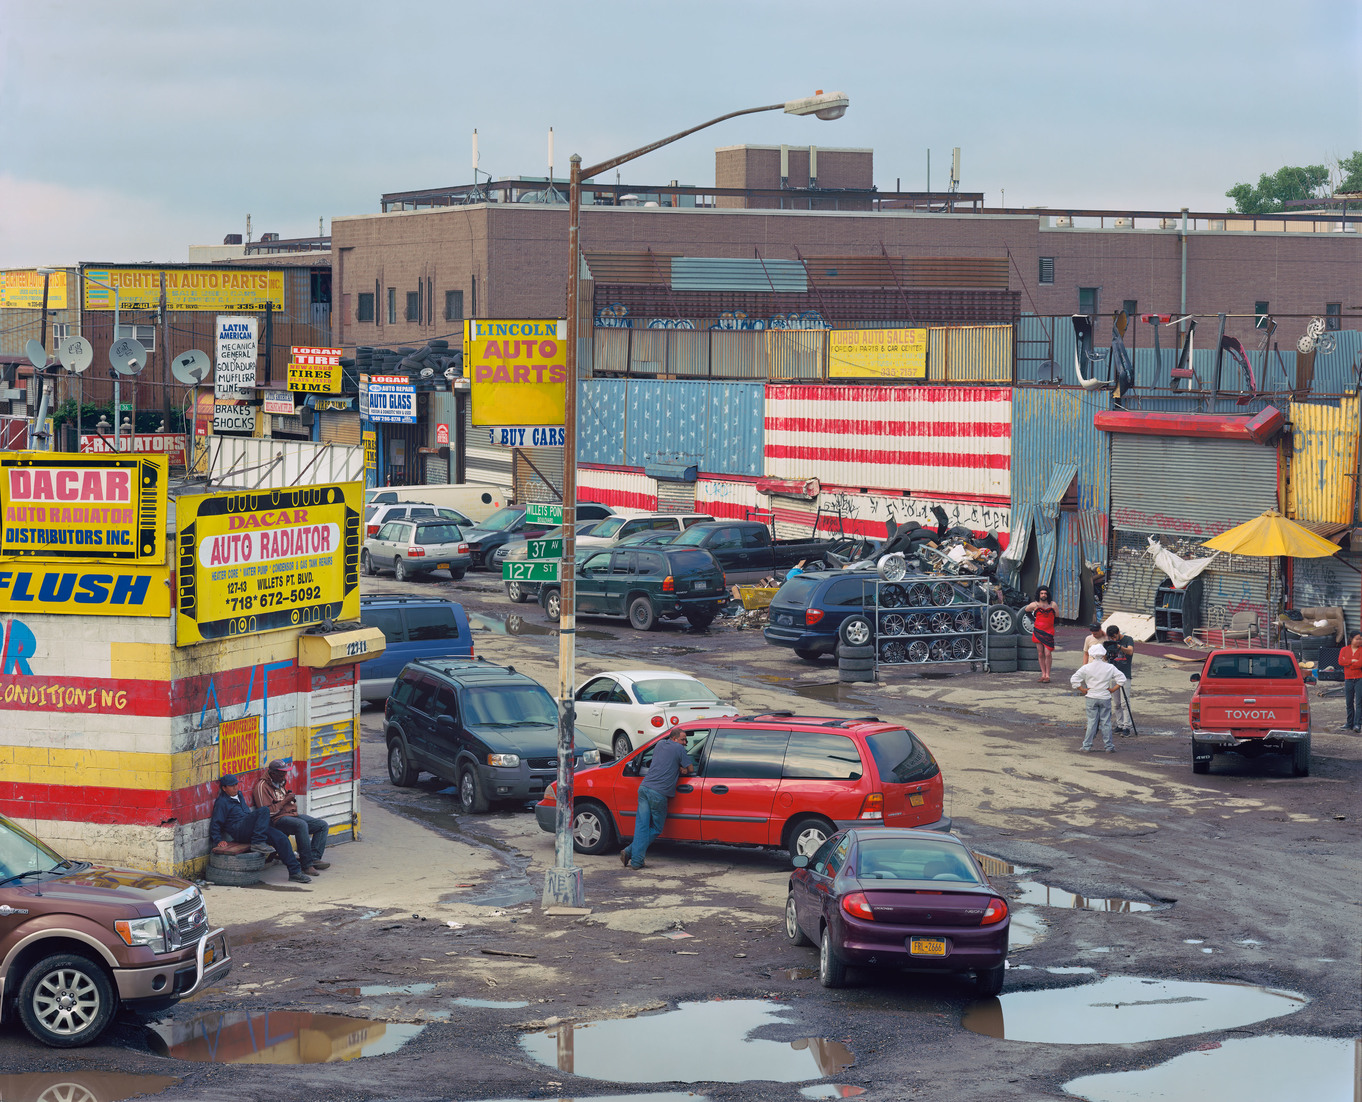 Bearded Lady, Willets Point, New York City, USA, 2014